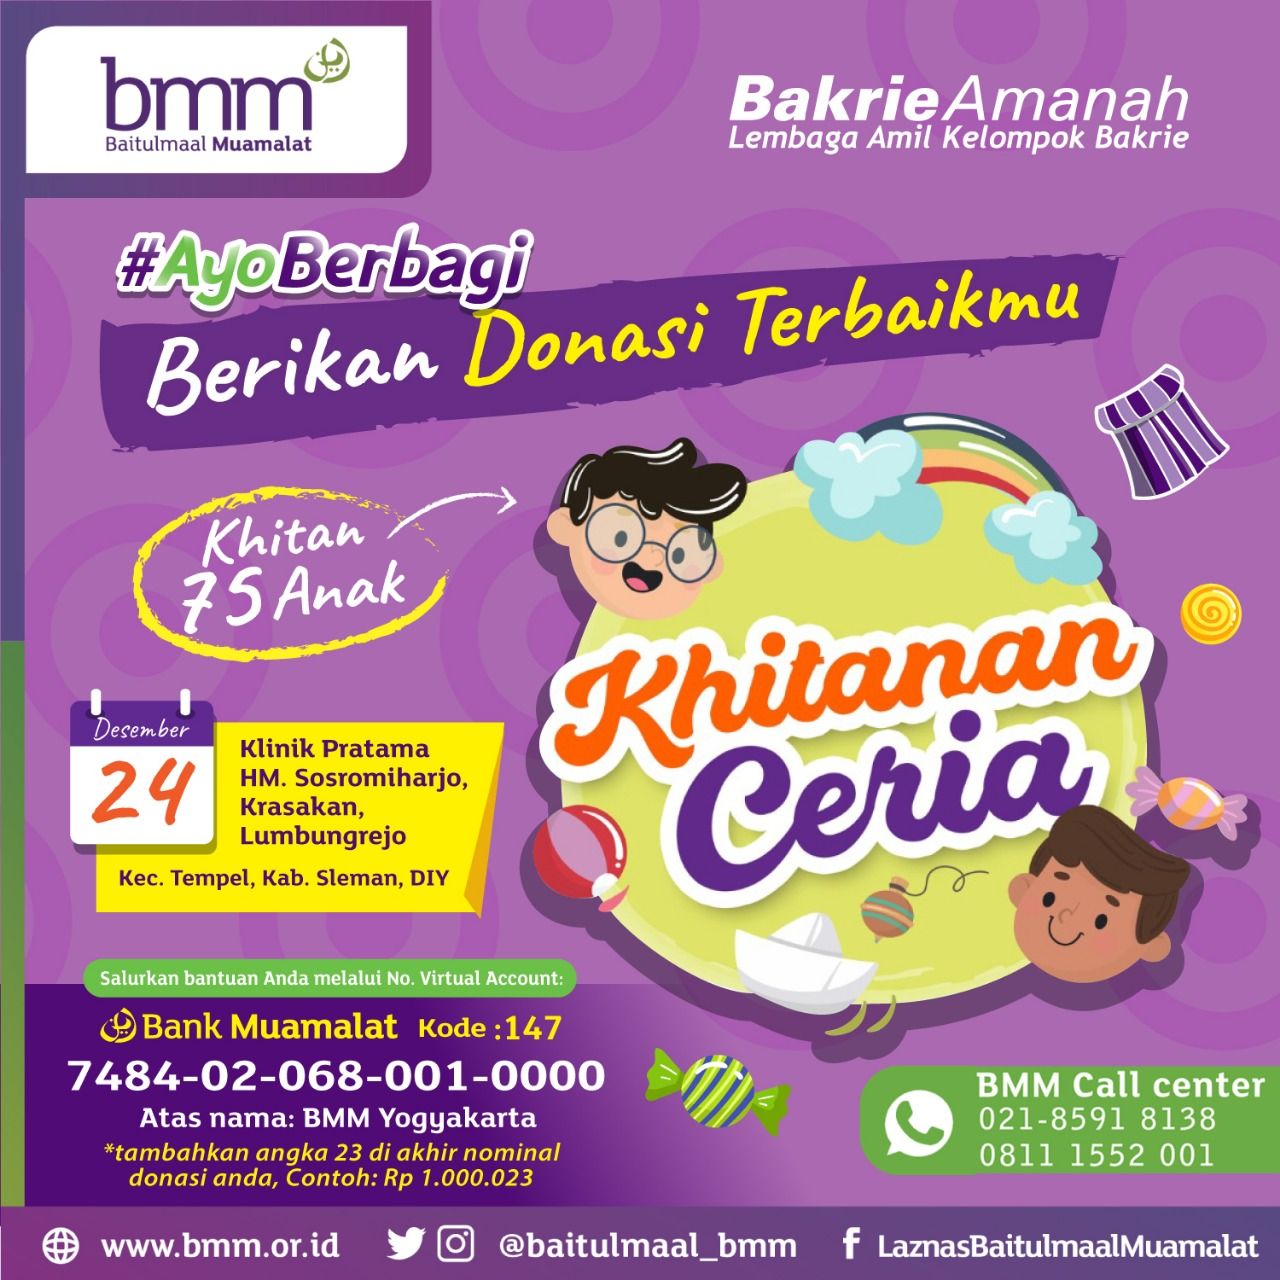 files/event/khitanan-ceria-58564180511562e.jpeg